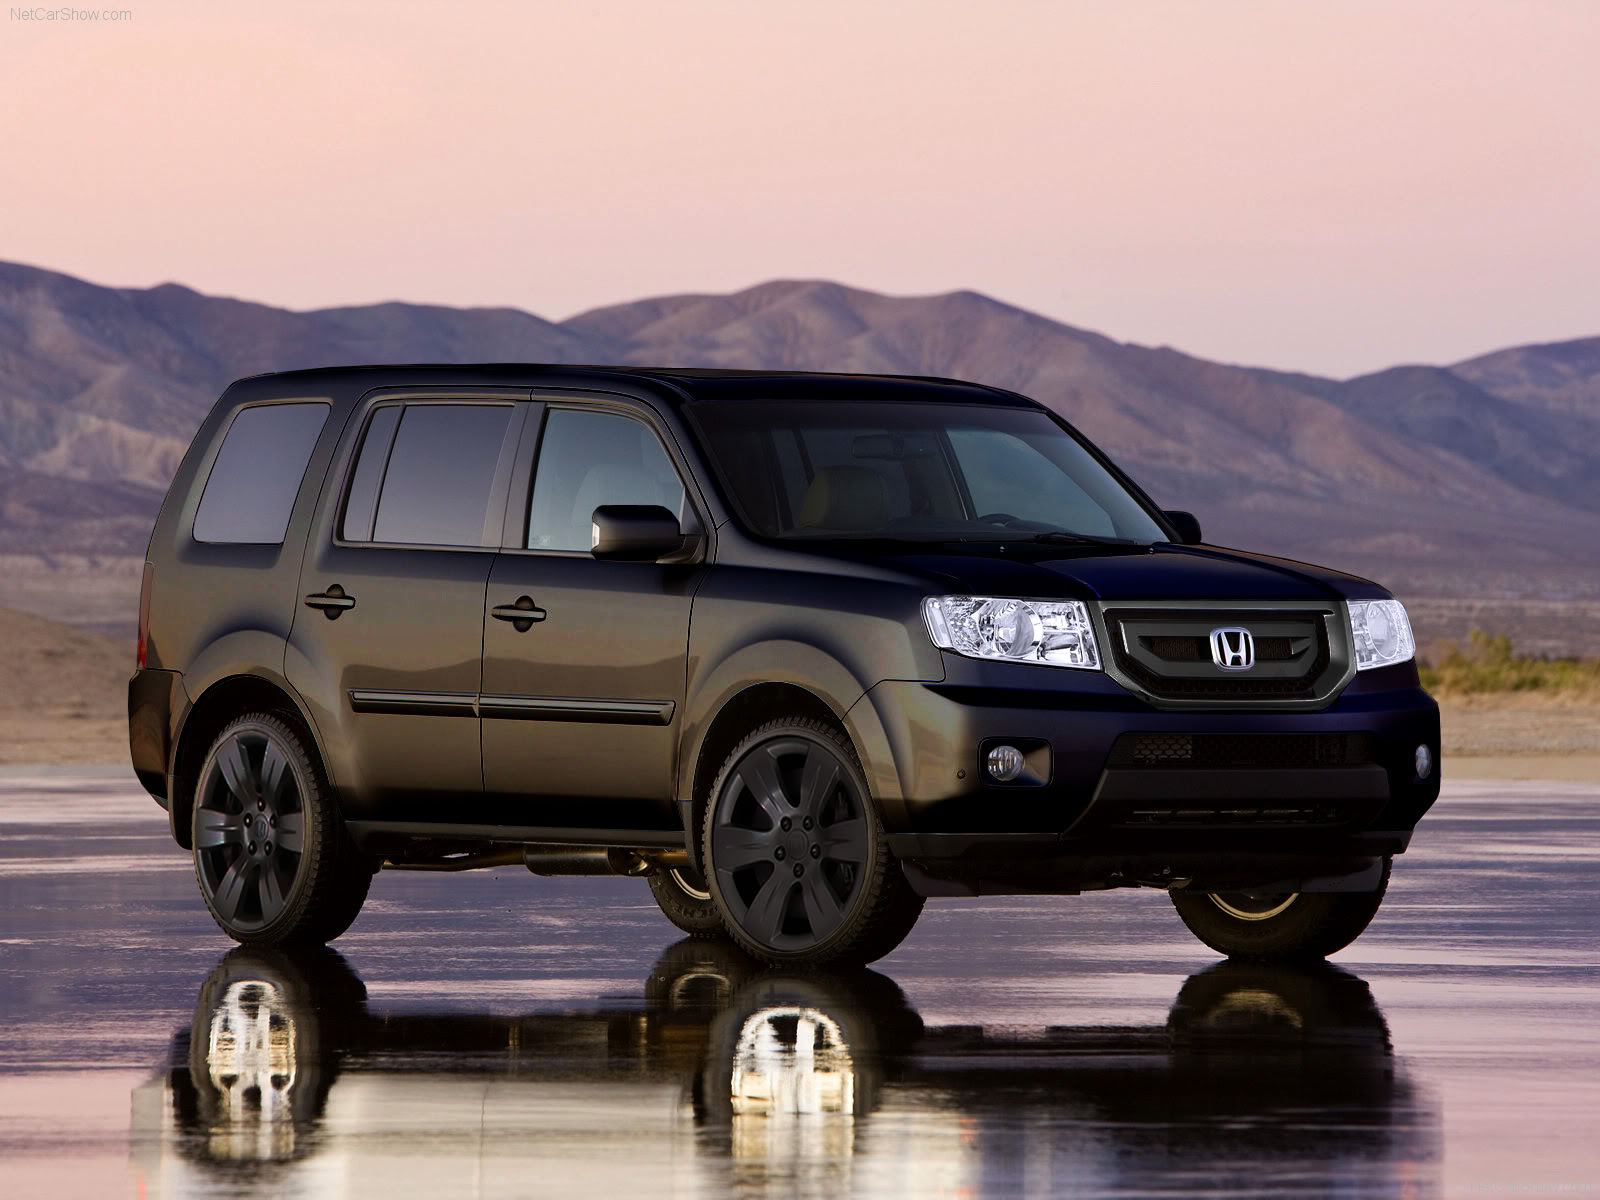 Honda Pilot 4 Cool Wallpaper